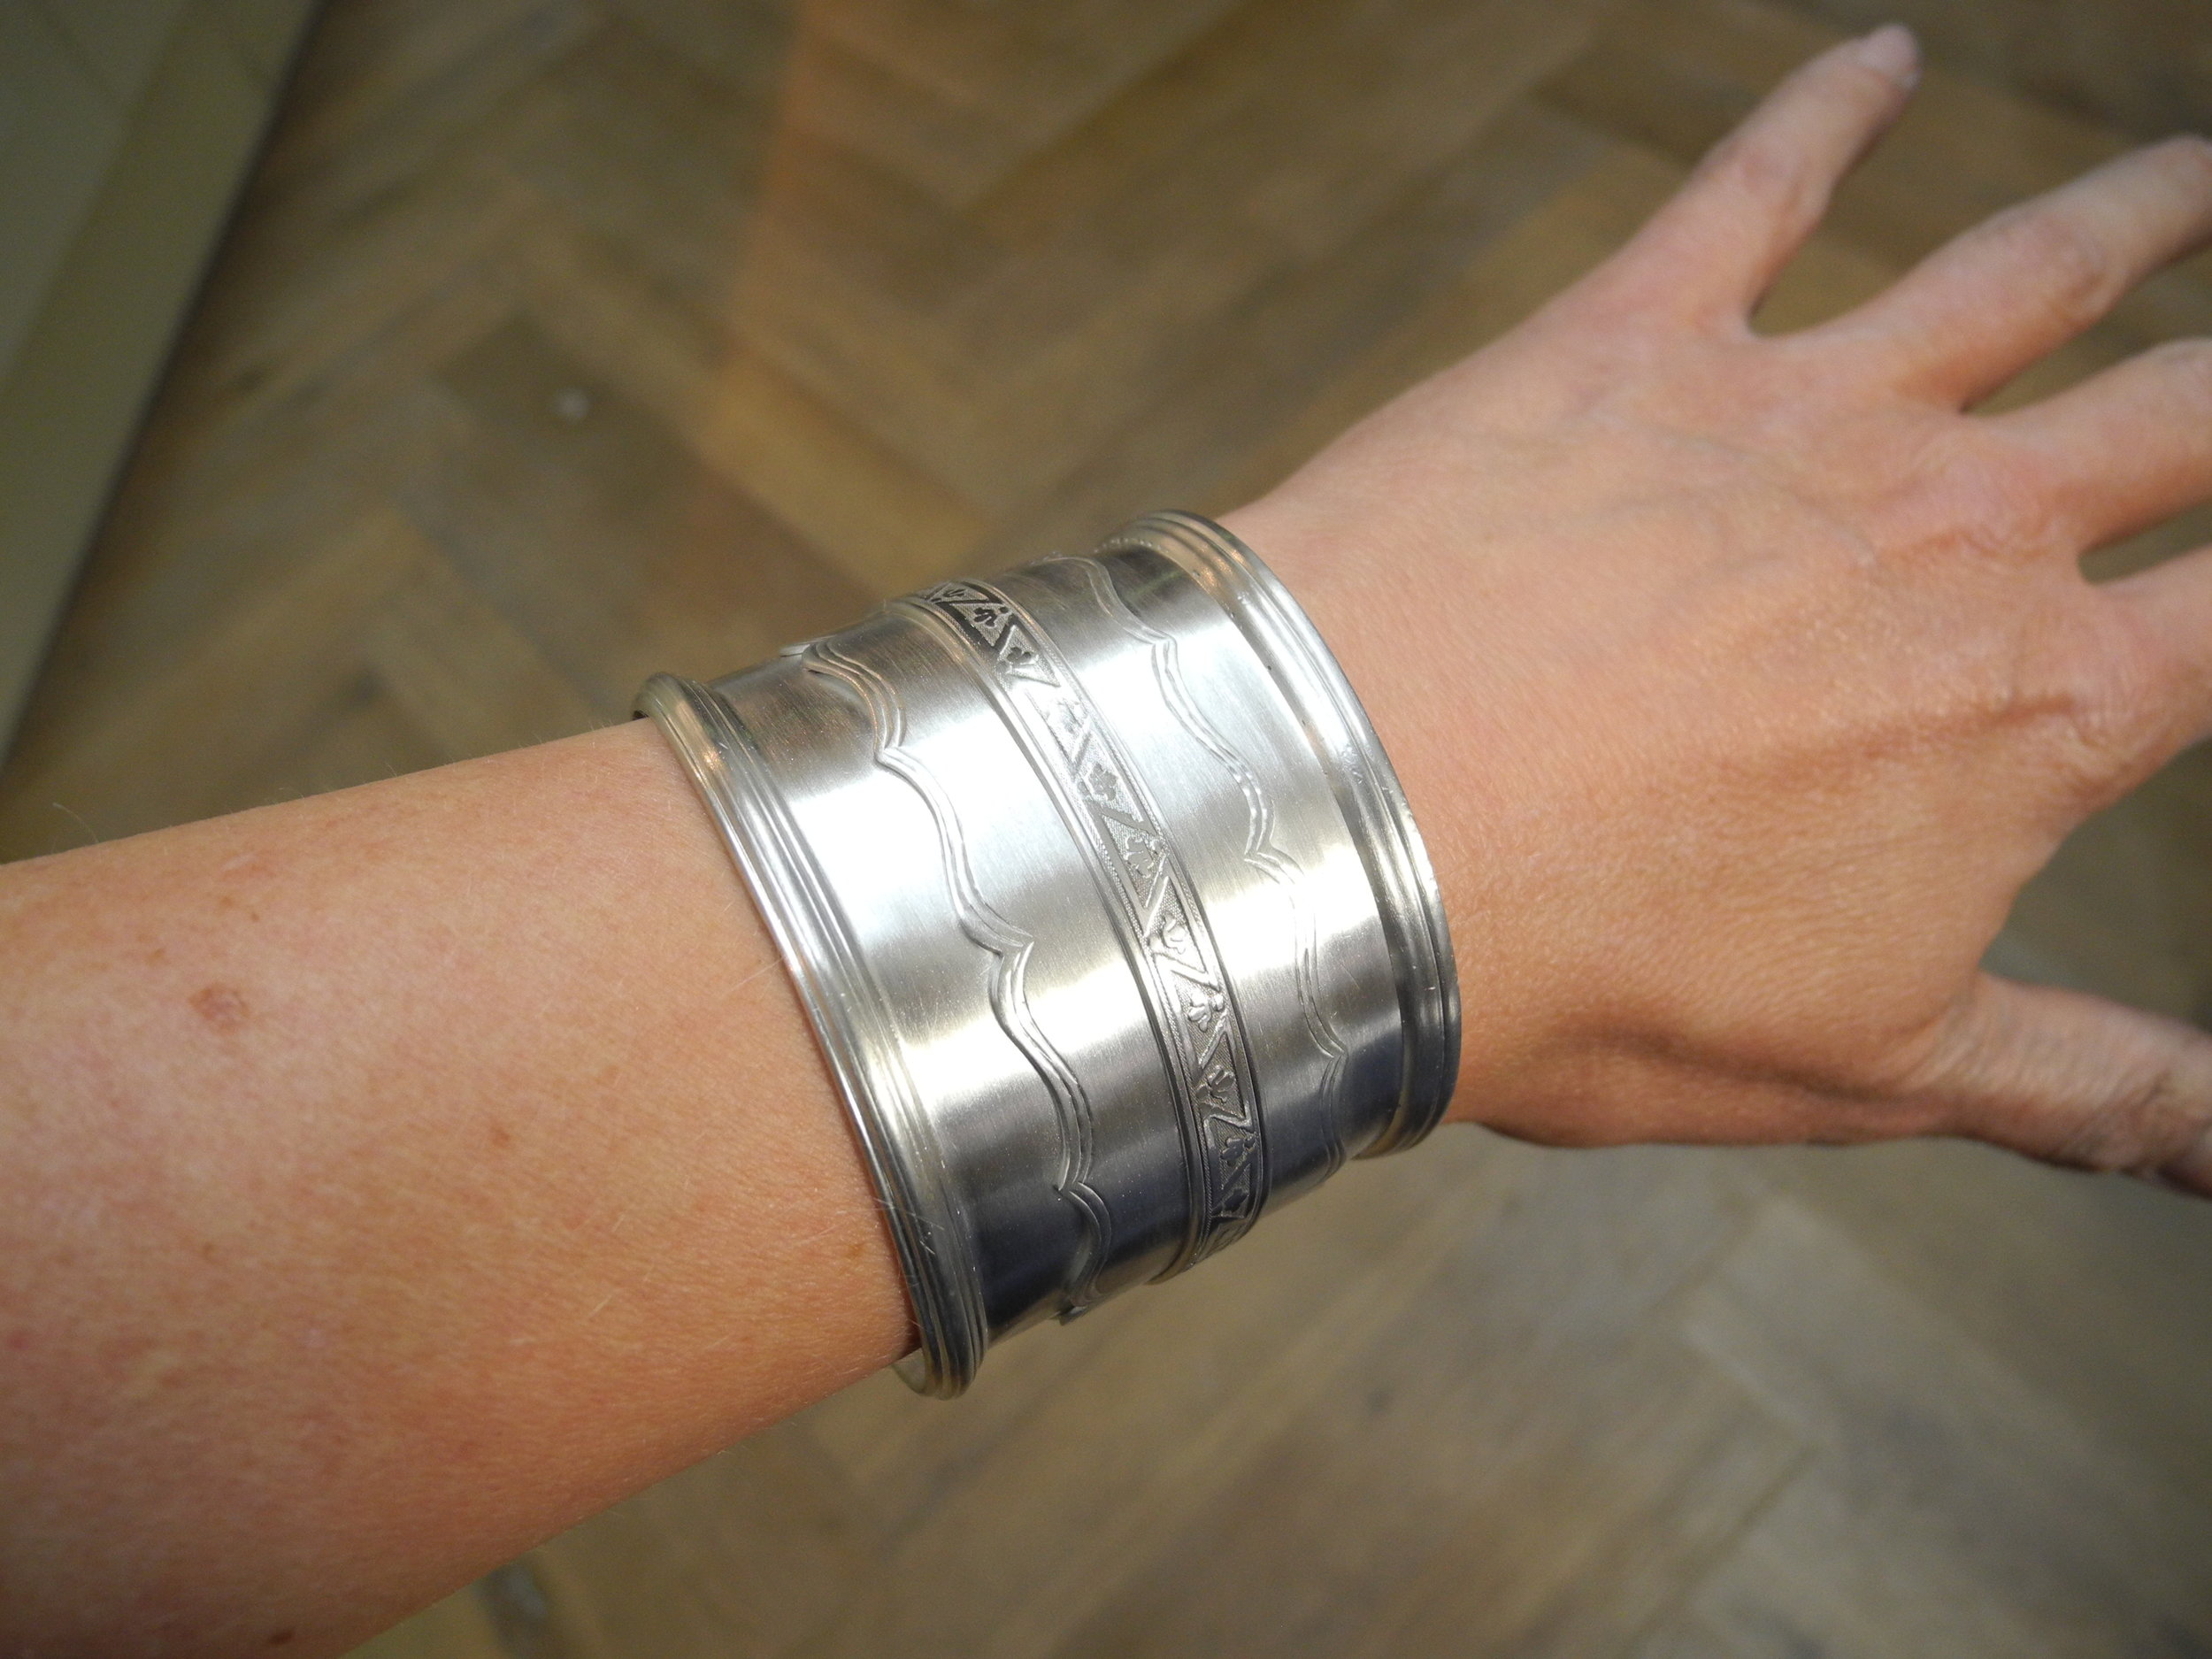 Finished silver wrist cuff